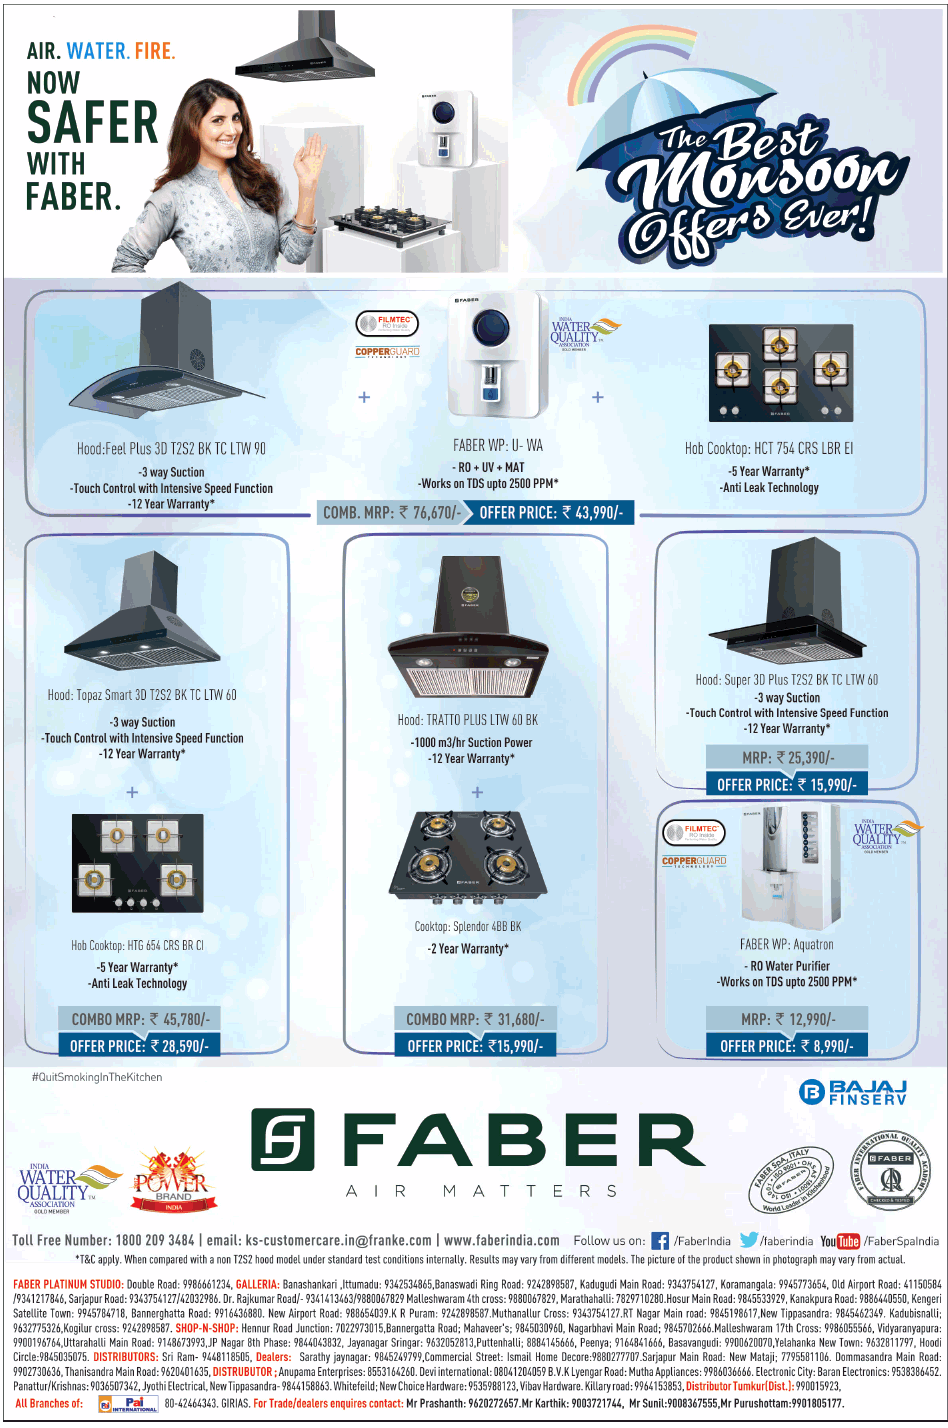 Faber Attractive Offers Bangalore Saleraja